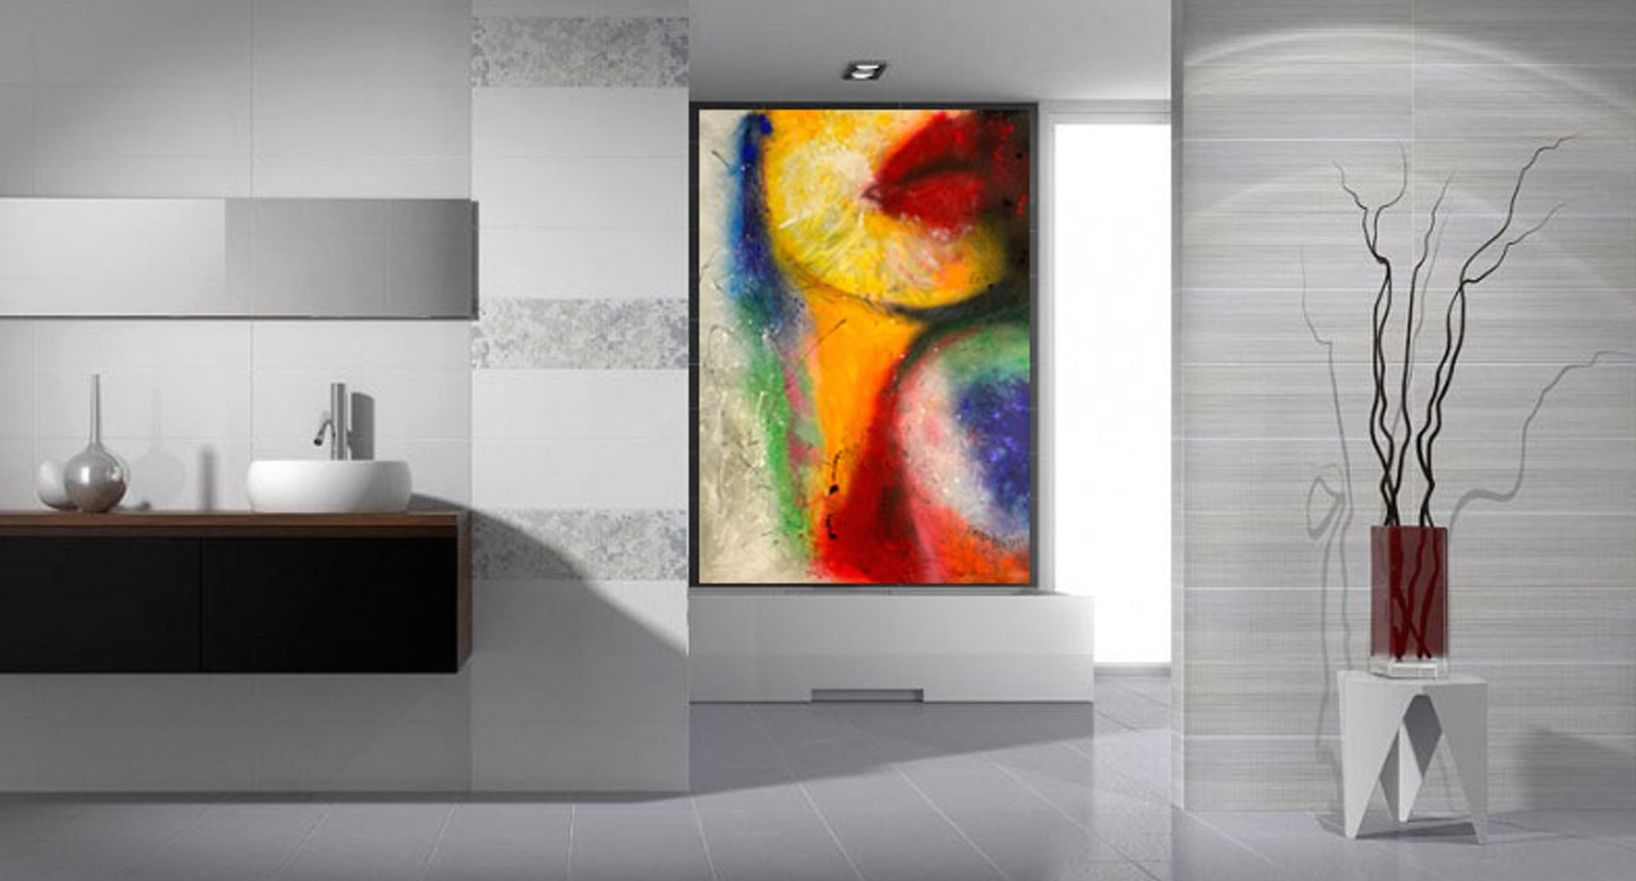 http://socofreire.com/commissioned-art  Have you ever felt like your home is missing something? Let Soco Freire Personalized Artwork complement your beautiful home, make just the way you imagined.